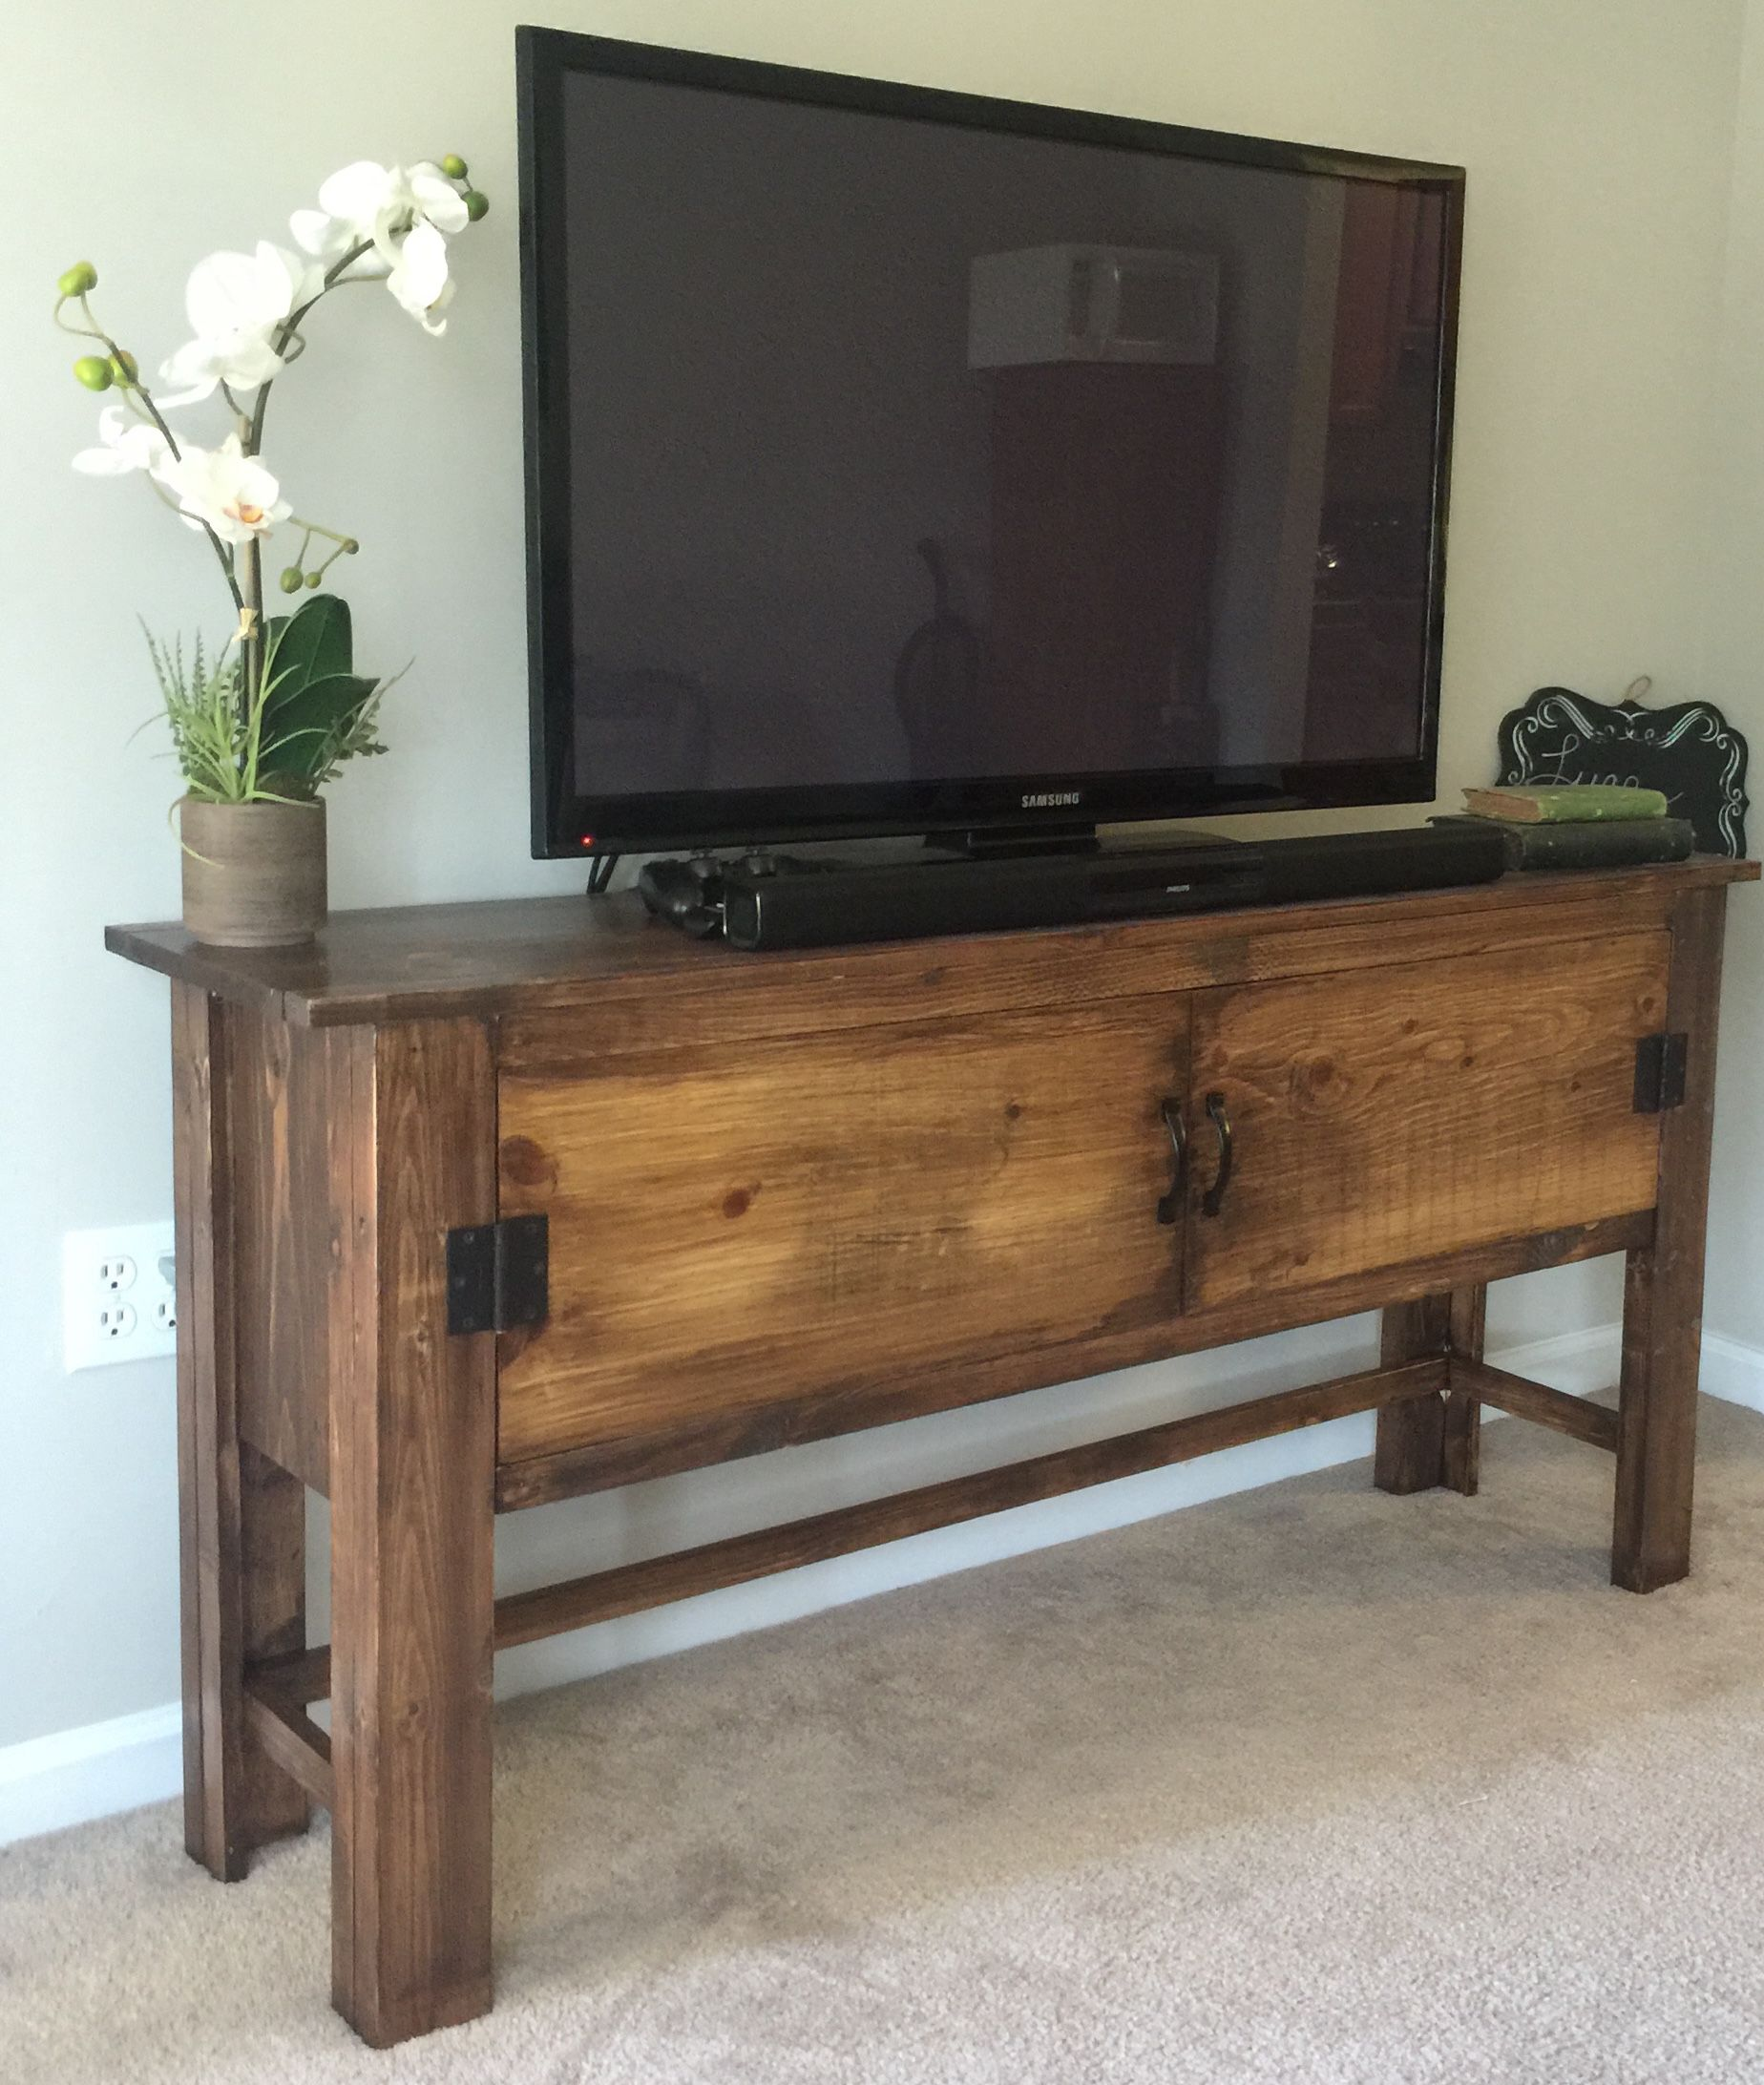 Ana White Balin Tv Stand Diy Projects Diy Tv Stand Home